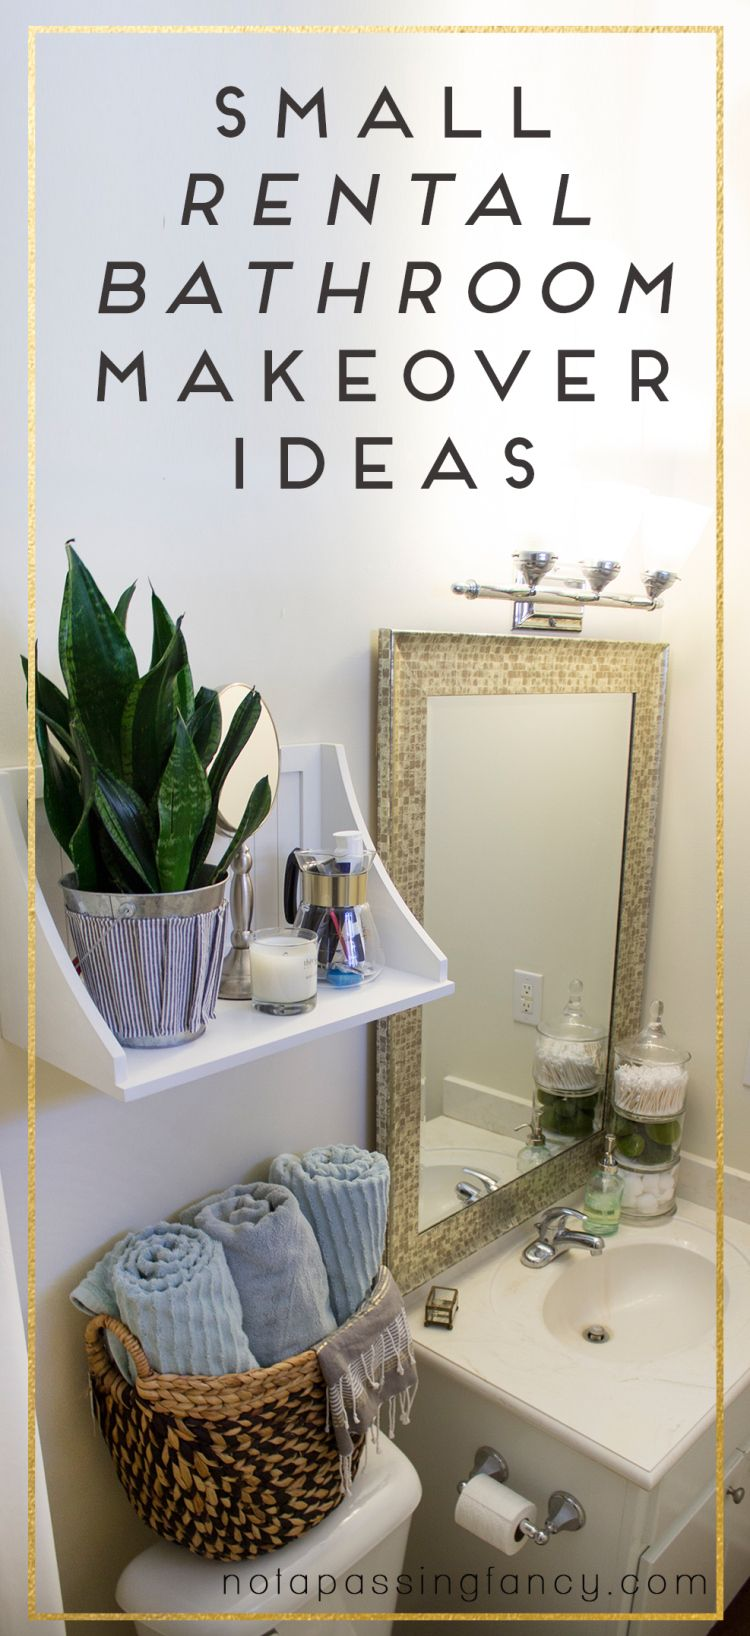 Small rental bathroom makeover ideas not a passing fancy blog create share inspire top pins - Bathroom decorating ideas for apartments ...